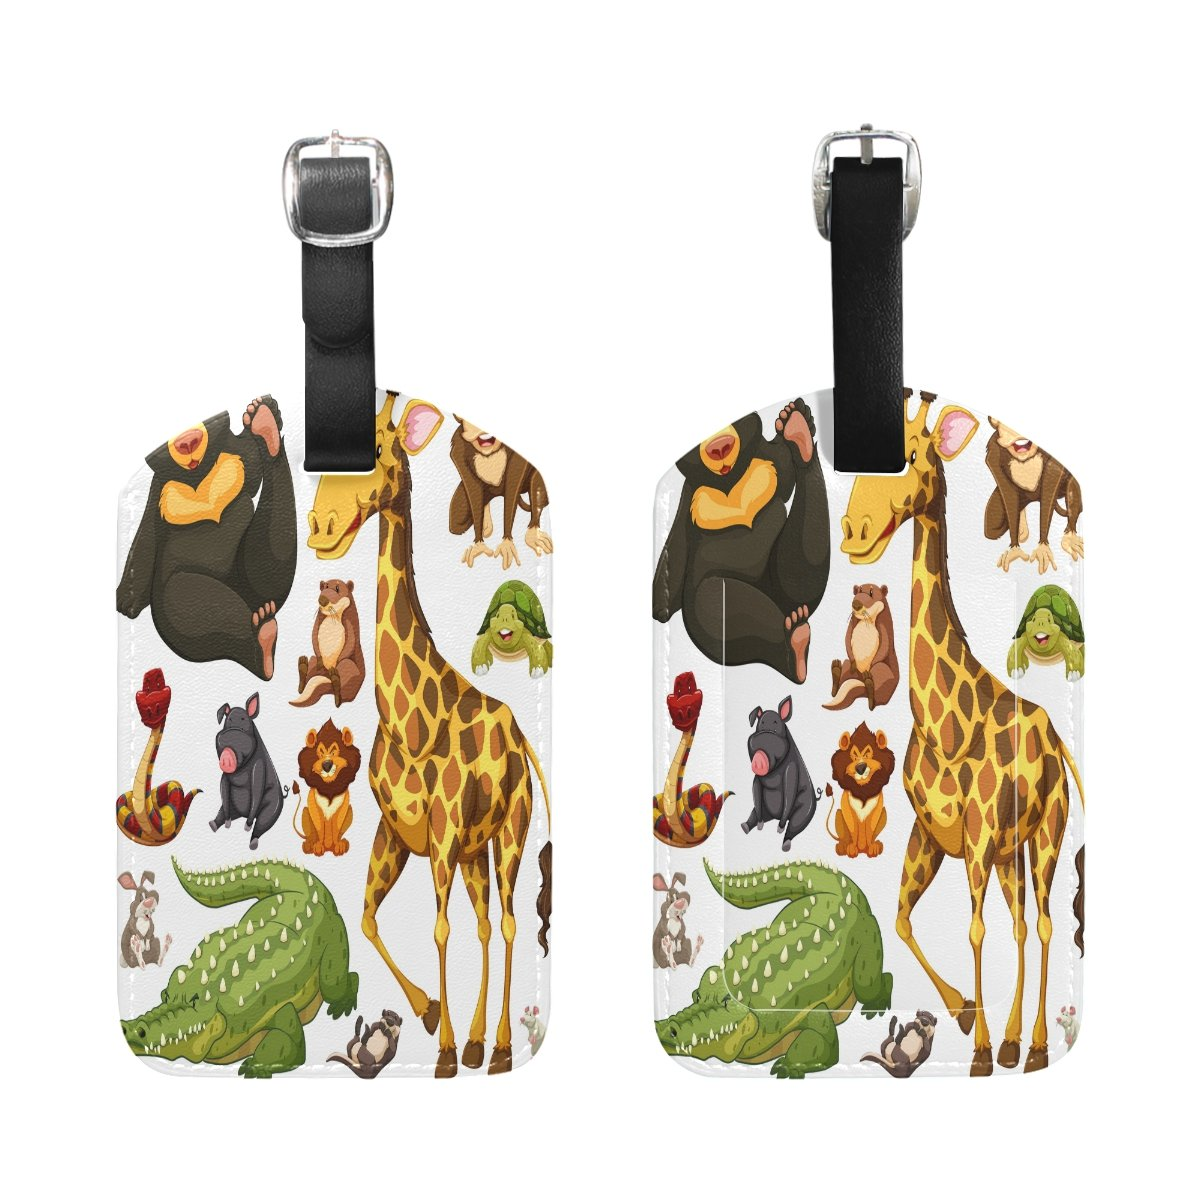 Saobao Travel Luggage Tag Different Types Of Wild Animals PU Leather Baggage Suitcase Travel ID Bag Tag 1Pcs